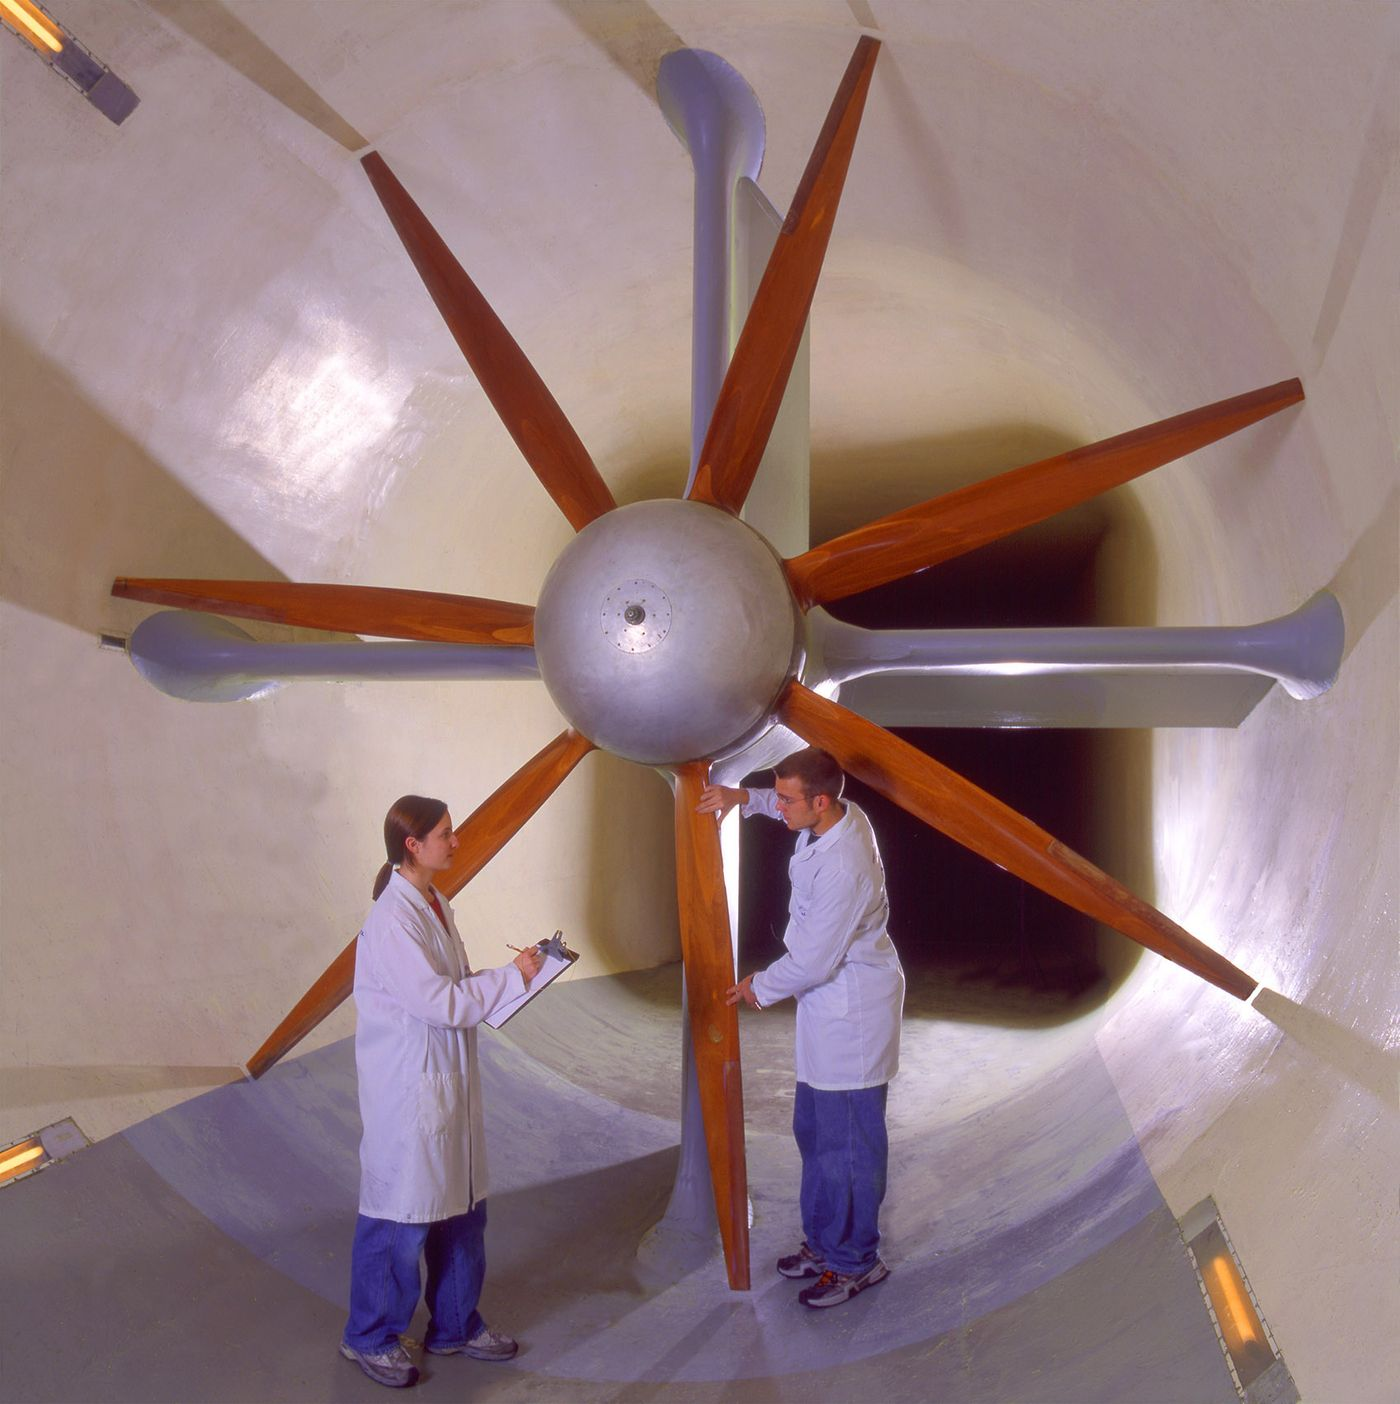 The Giant Kirsten Wind Tunnel at the University of Washington